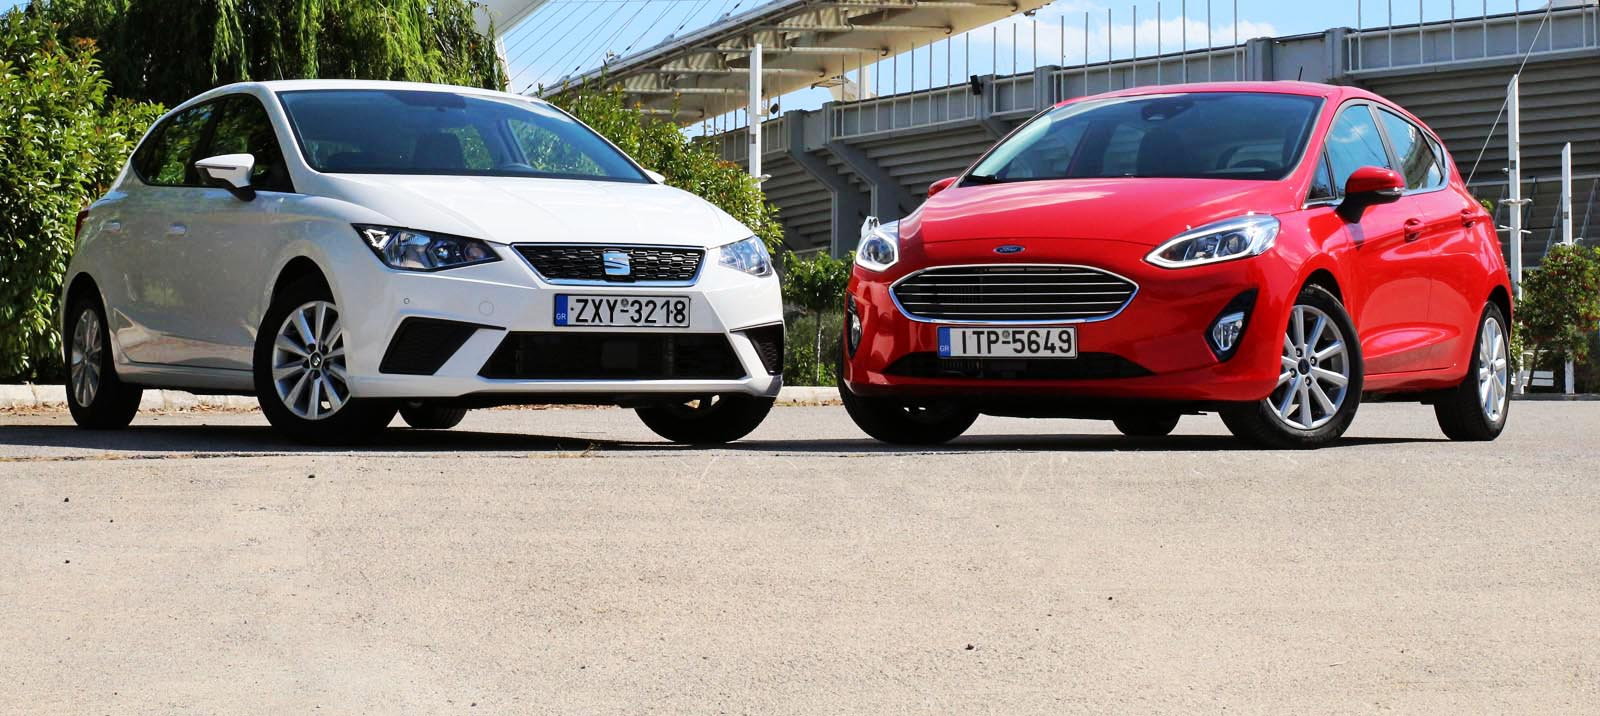 Photo of Ford Fiesta 1.0 Ecoboost vs Seat Ibiza 1.0 TSI [test drive